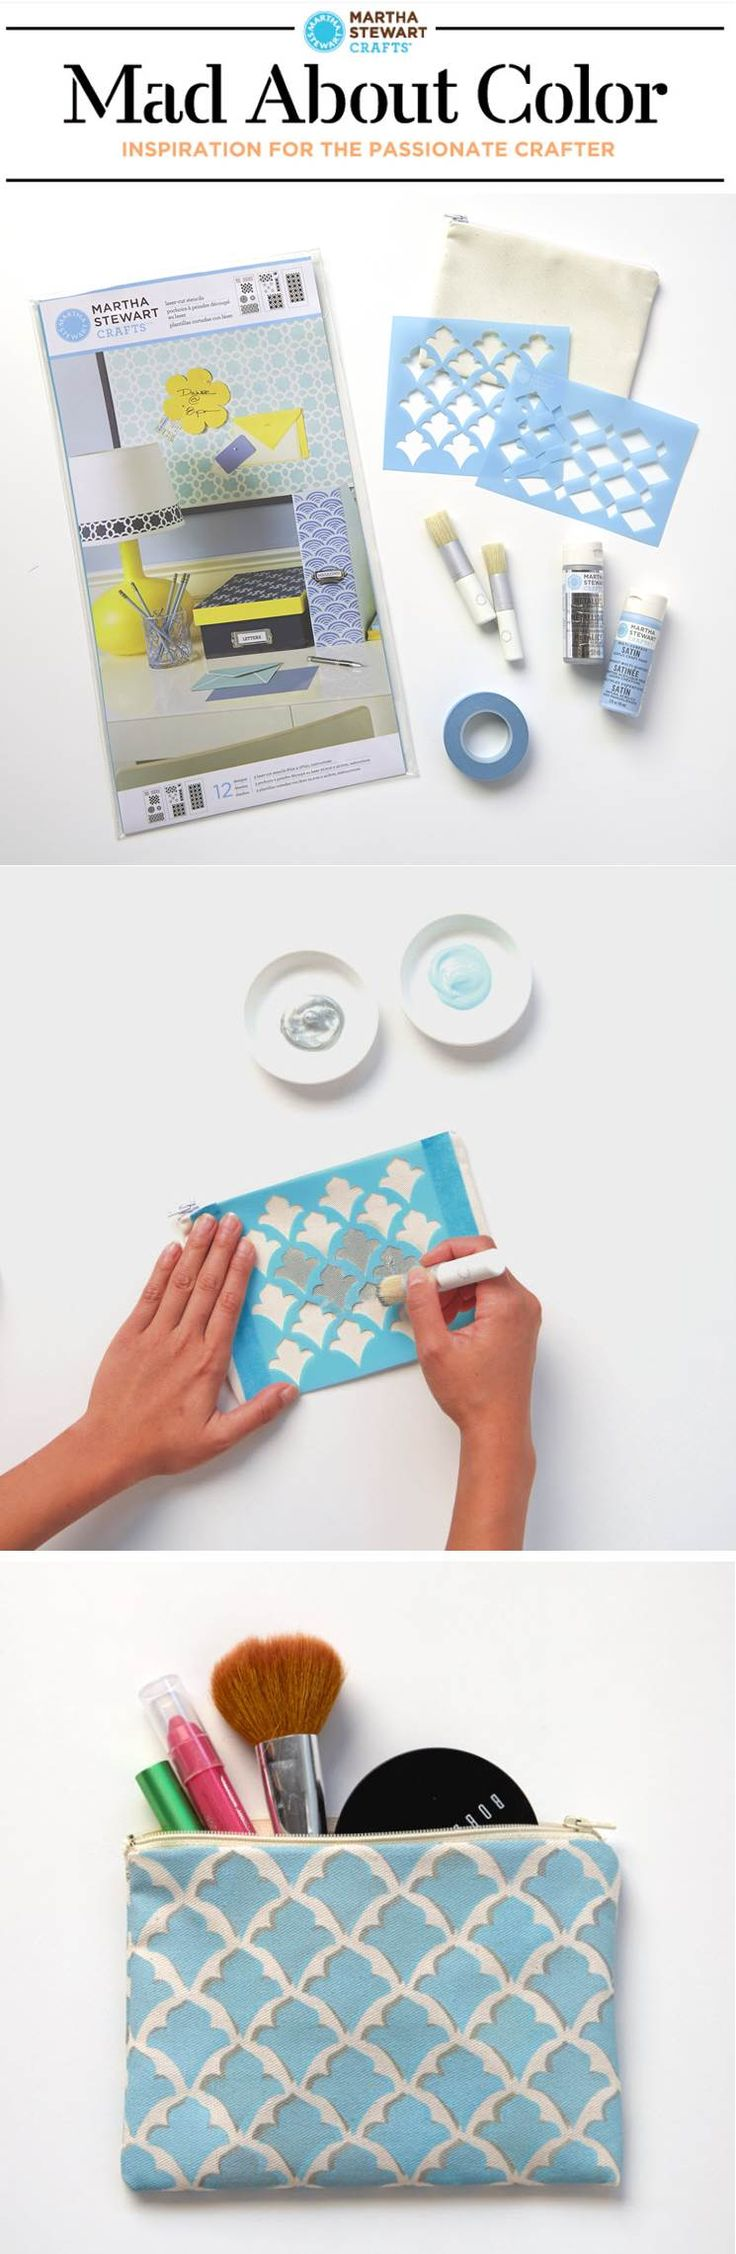 #DIY your own custom patterns with stencils and paints from #marthastewartcrafts. #madaboutcolor